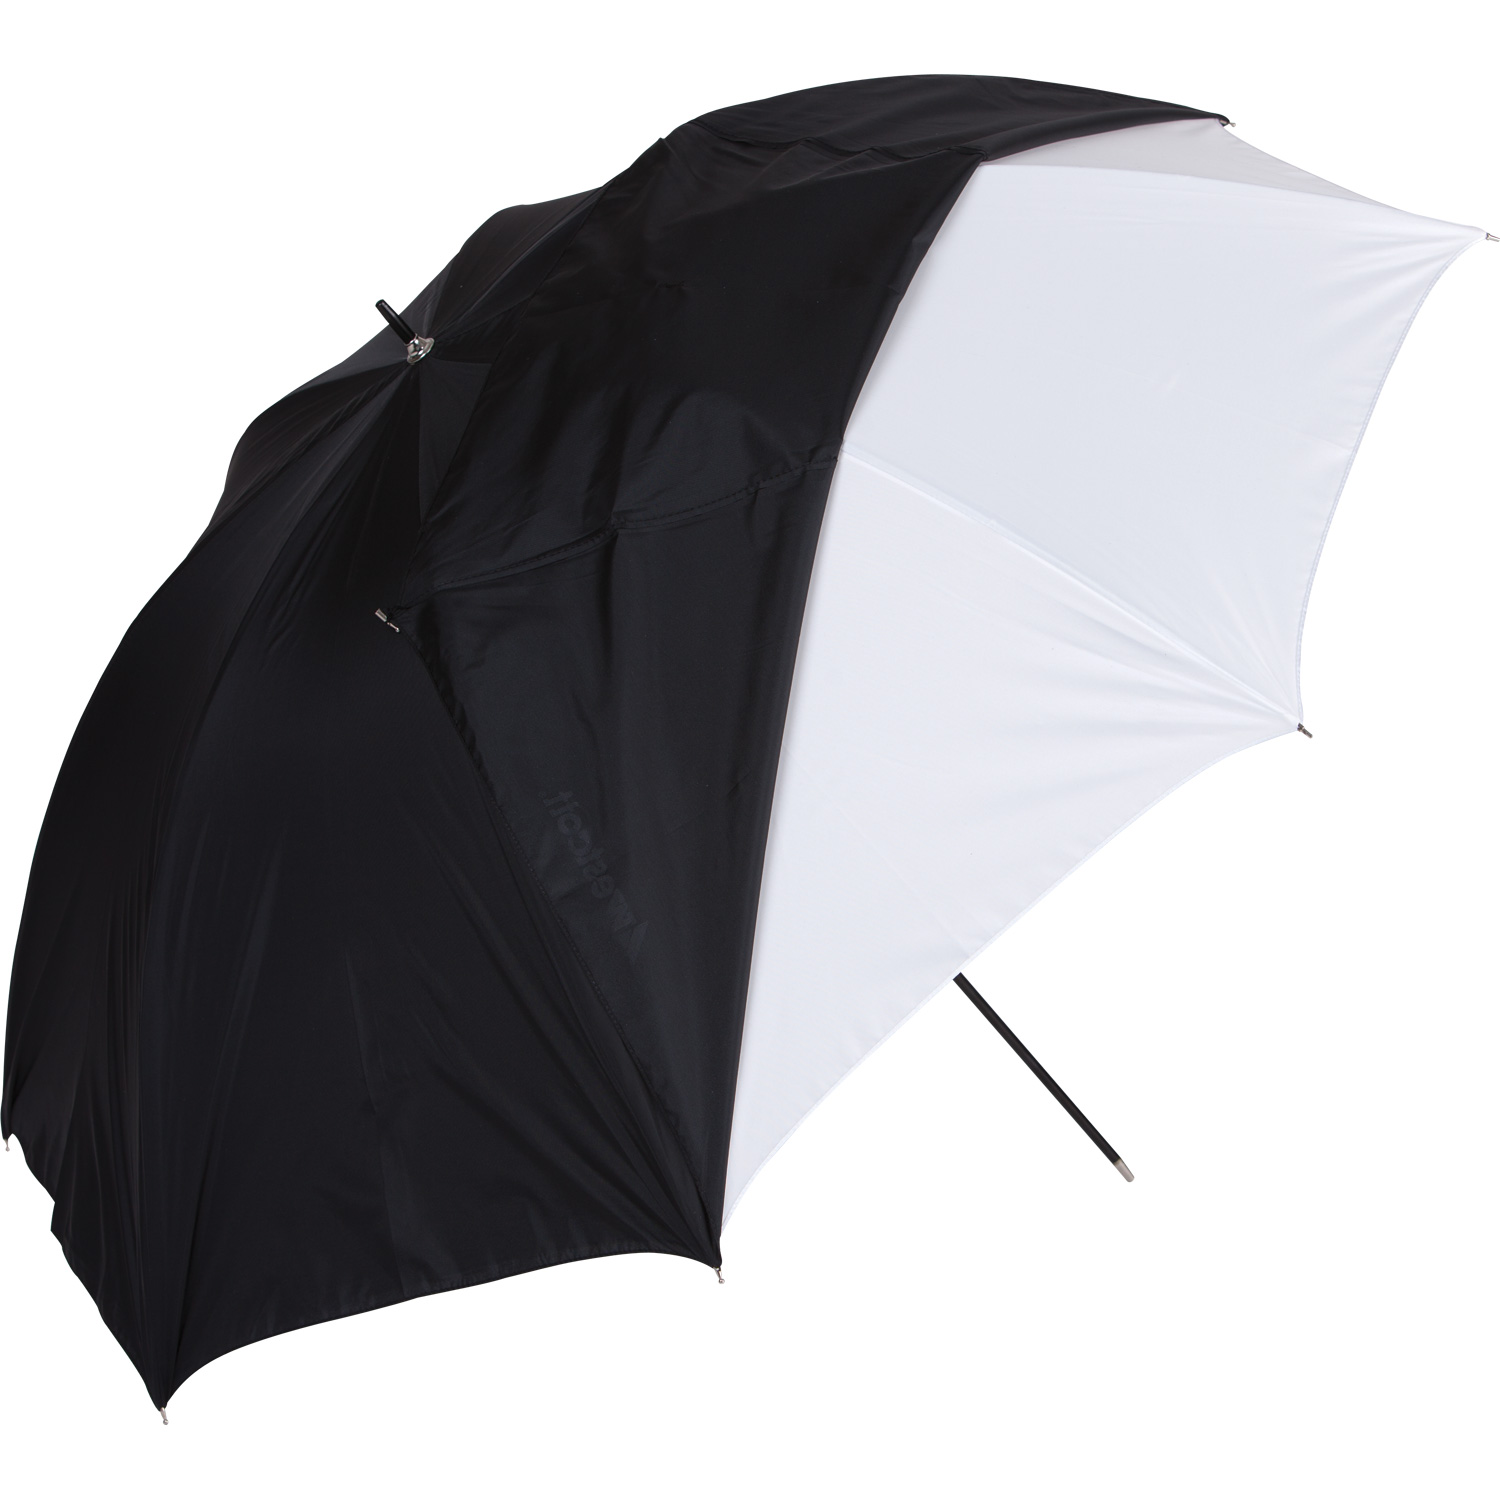 45-in. White Satin Umbrella with Removable Black Cover